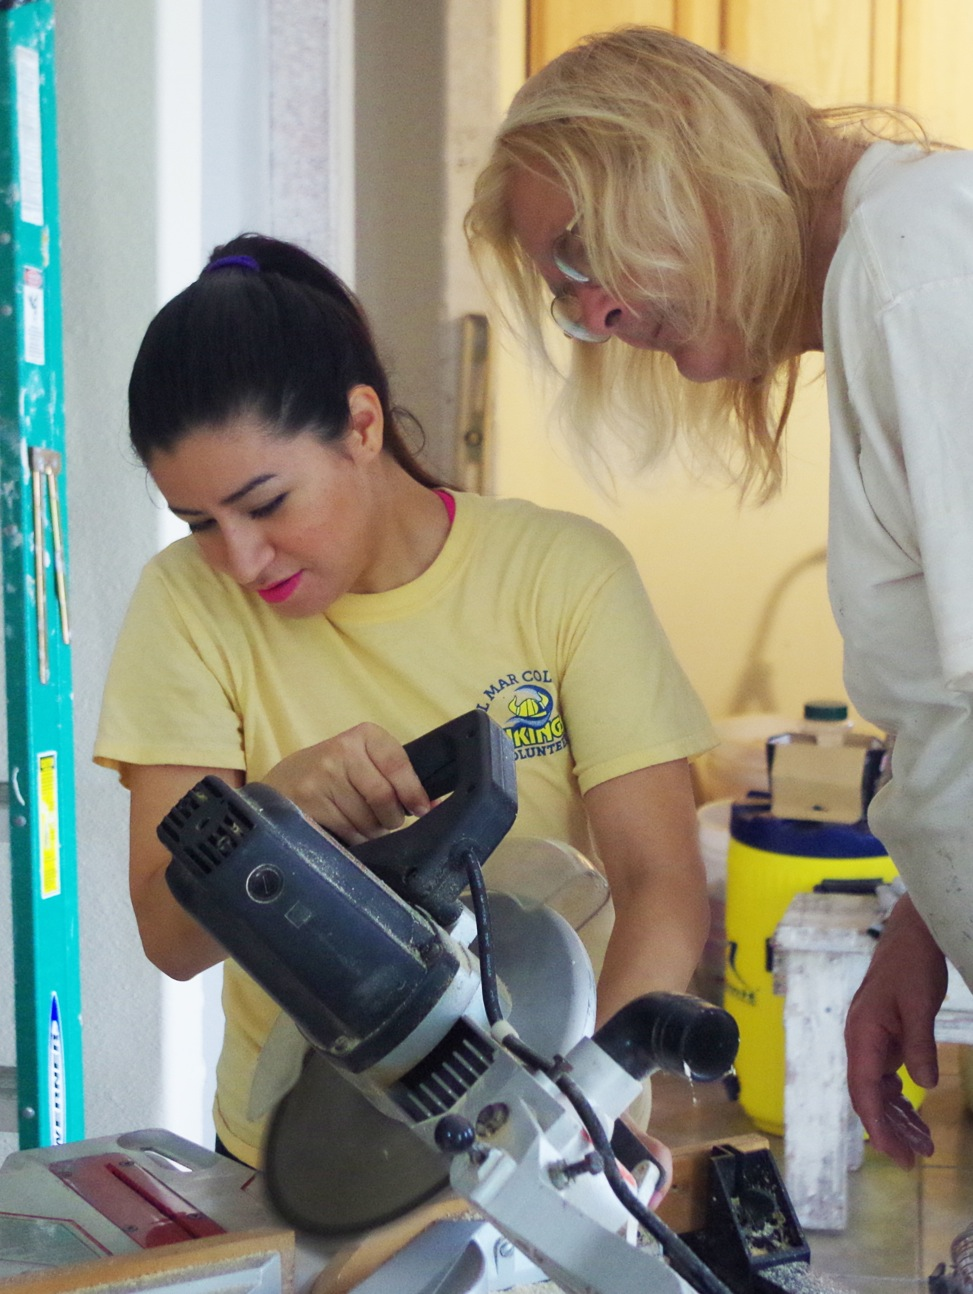 Erica Funes (left) gets help from Mari Randolph on how to properly use a miter saw on door trim pieces while helping build a Habitat for Humanity house.